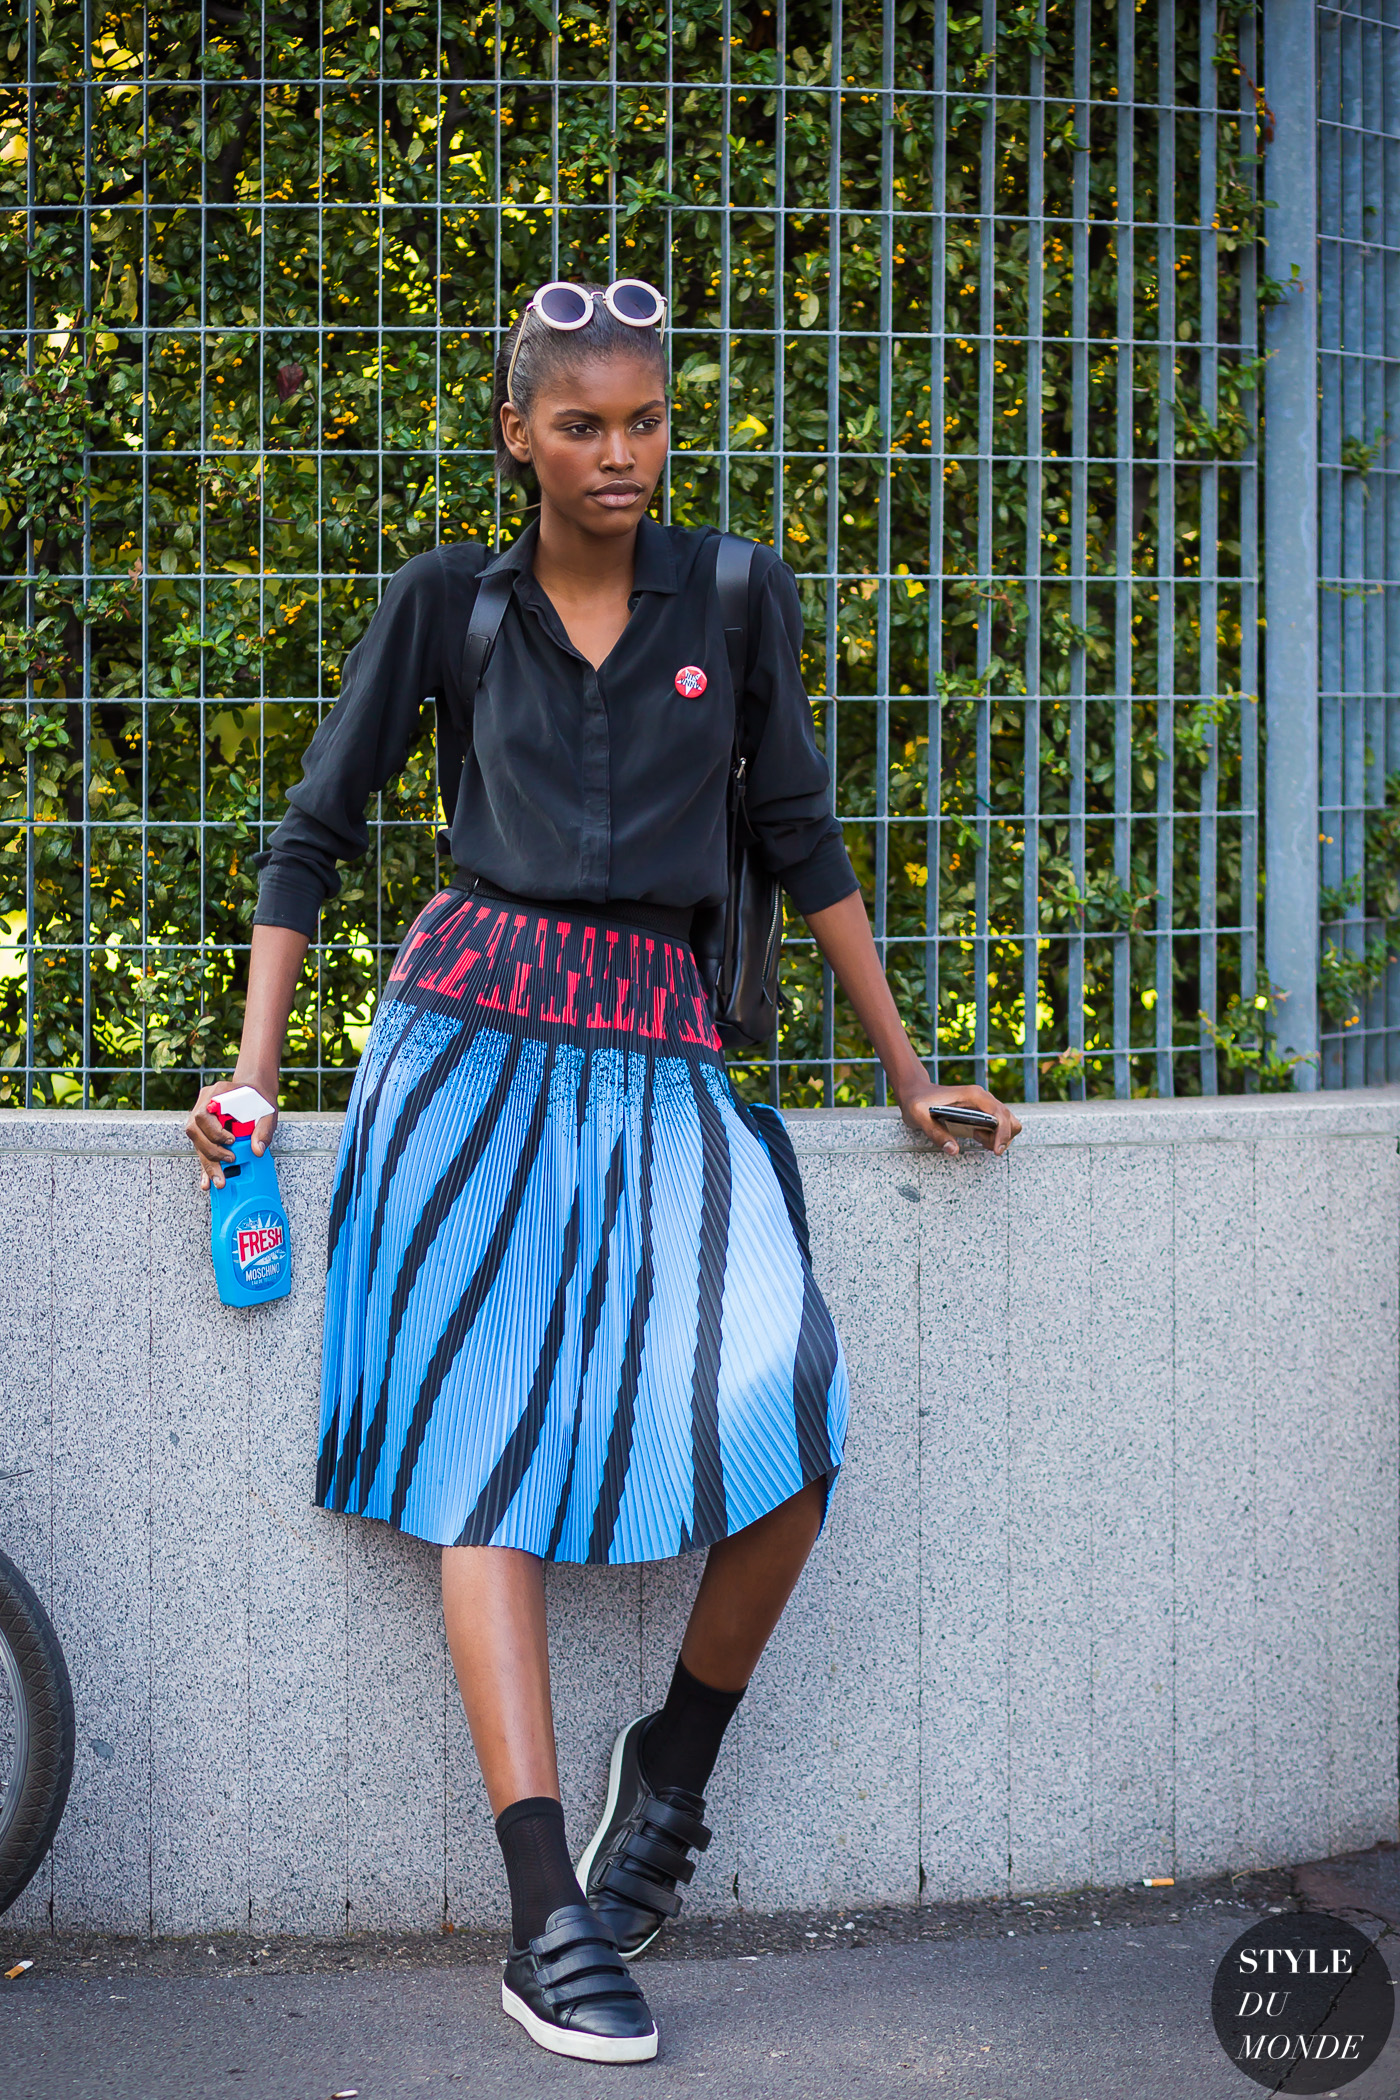 Amilna Estevao Street Style Street Fashion Streetsnaps by STYLEDUMONDE Street Style Fashion Photography